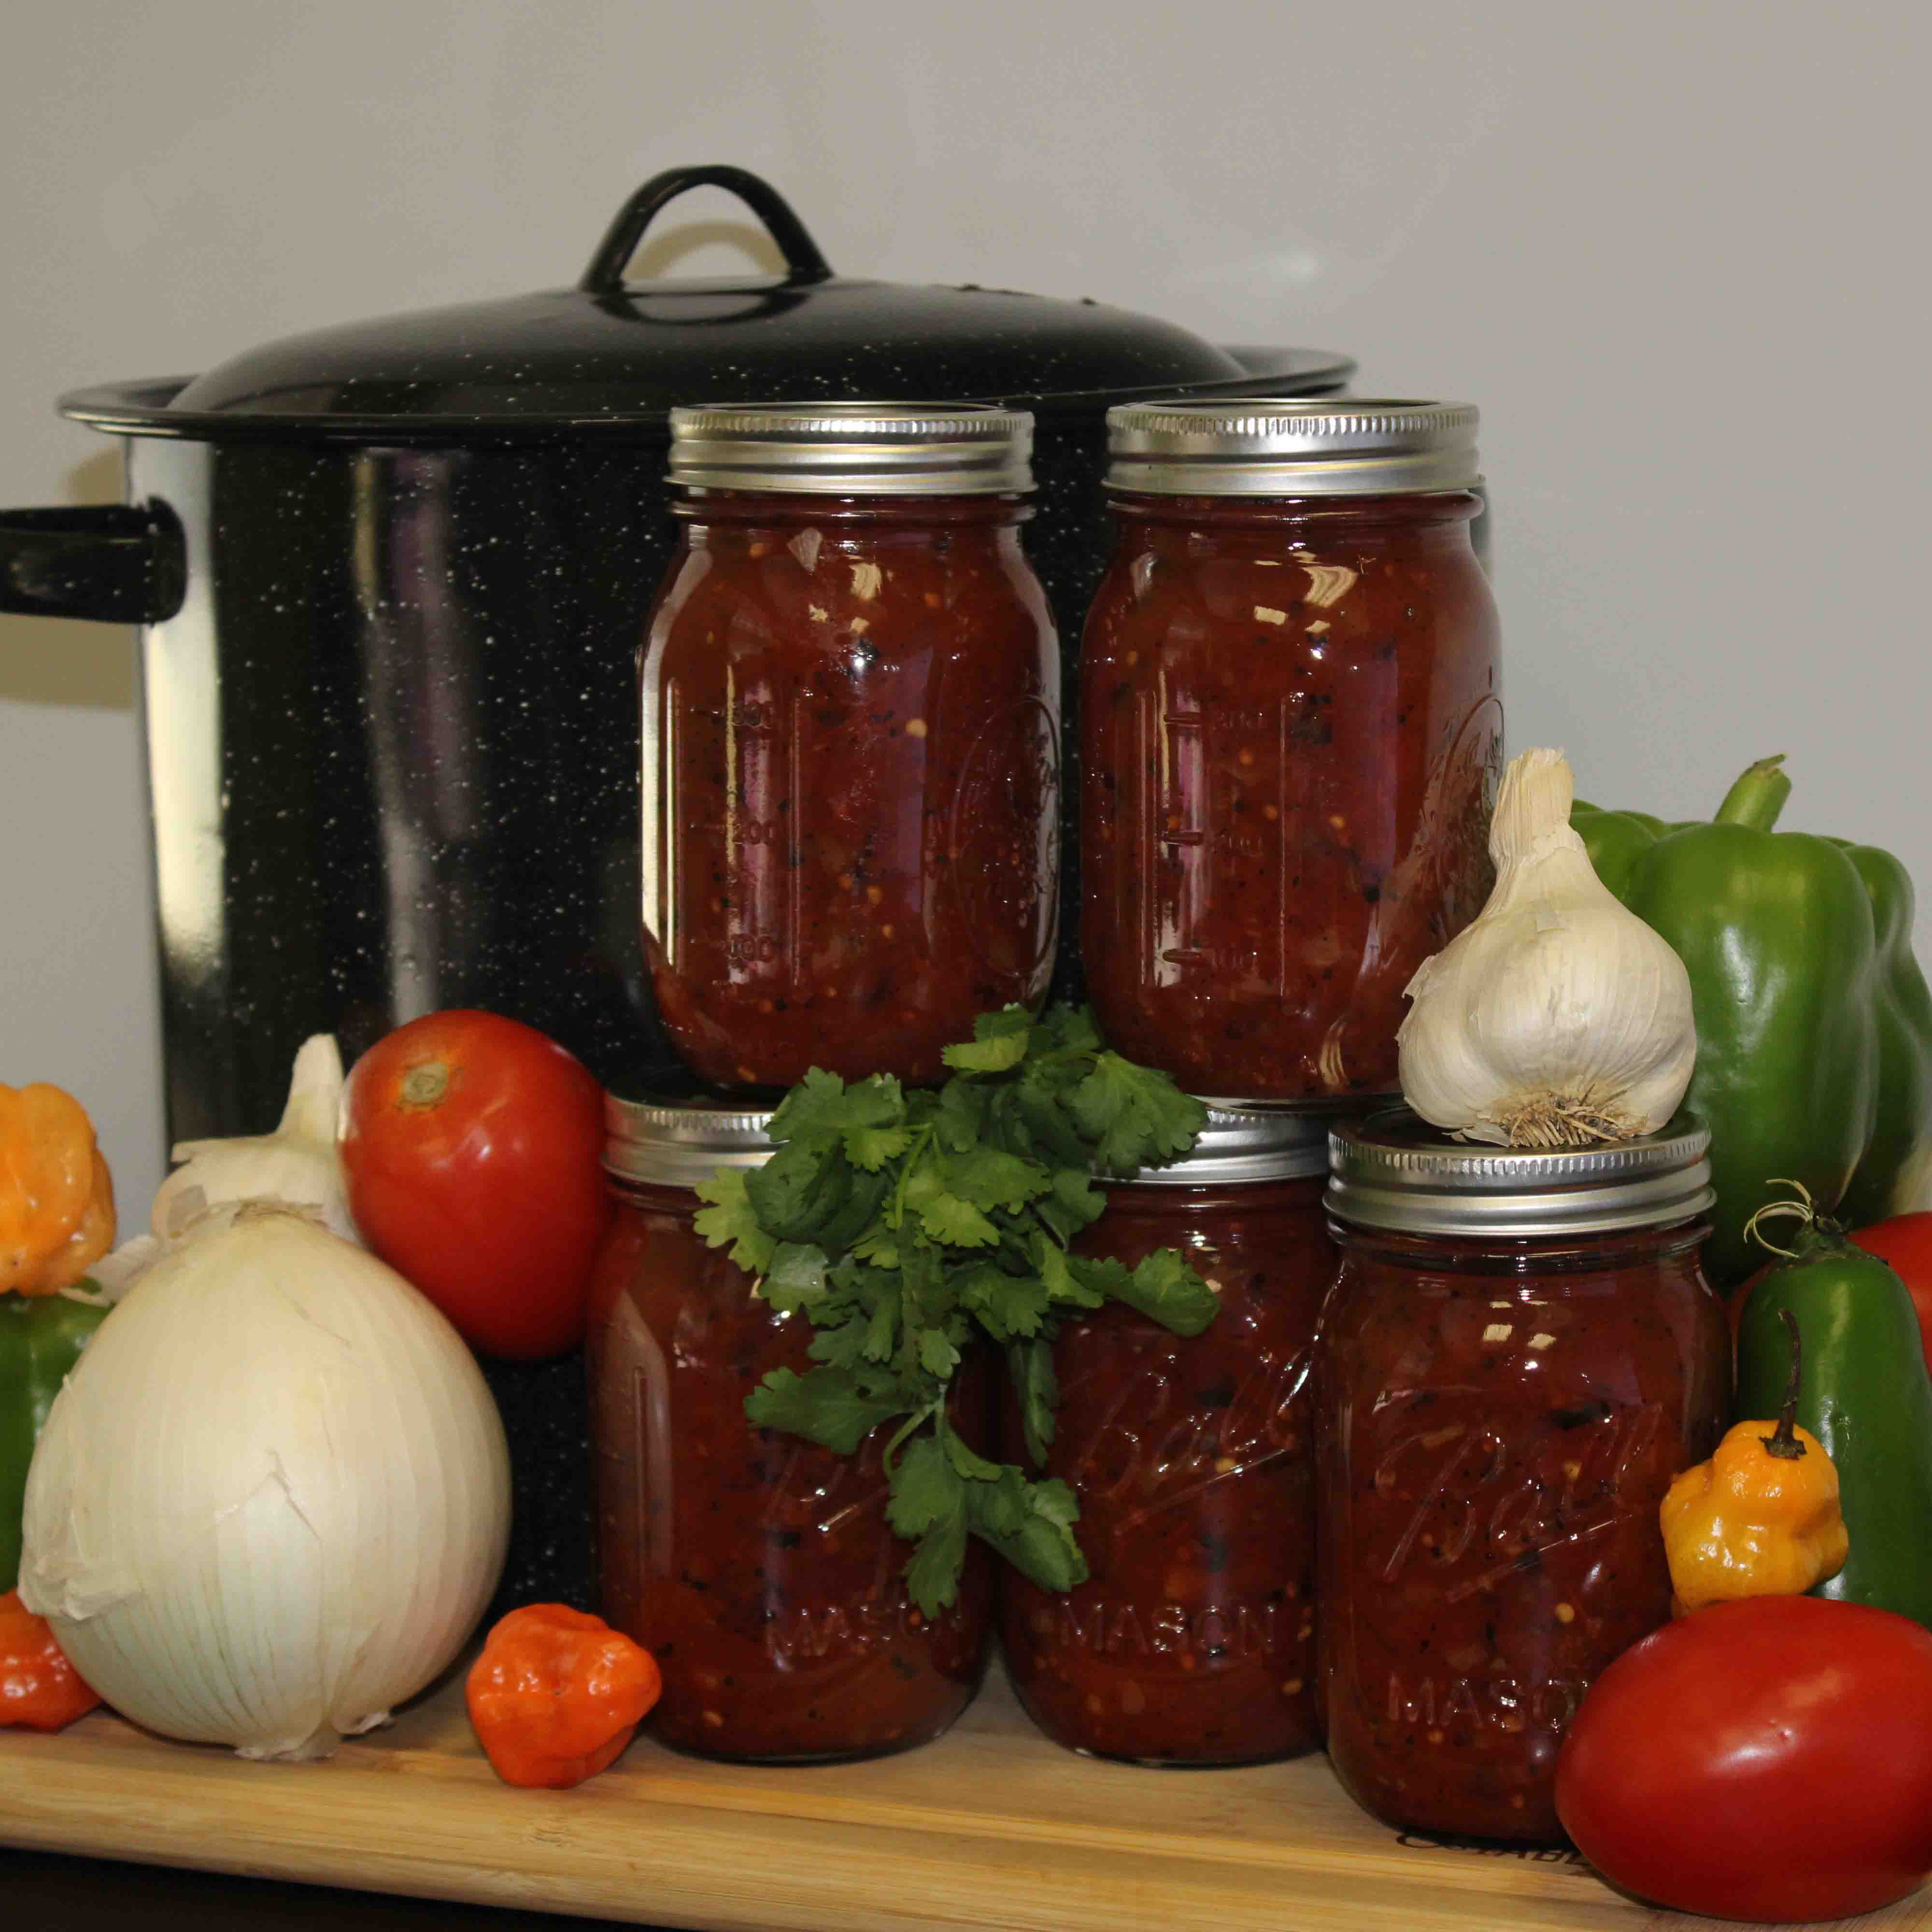 Salsas are an example of an acidified food and appropriate for boiling water canning if the final pH of all components is less than 4.6. (photo by Kayla Wall)